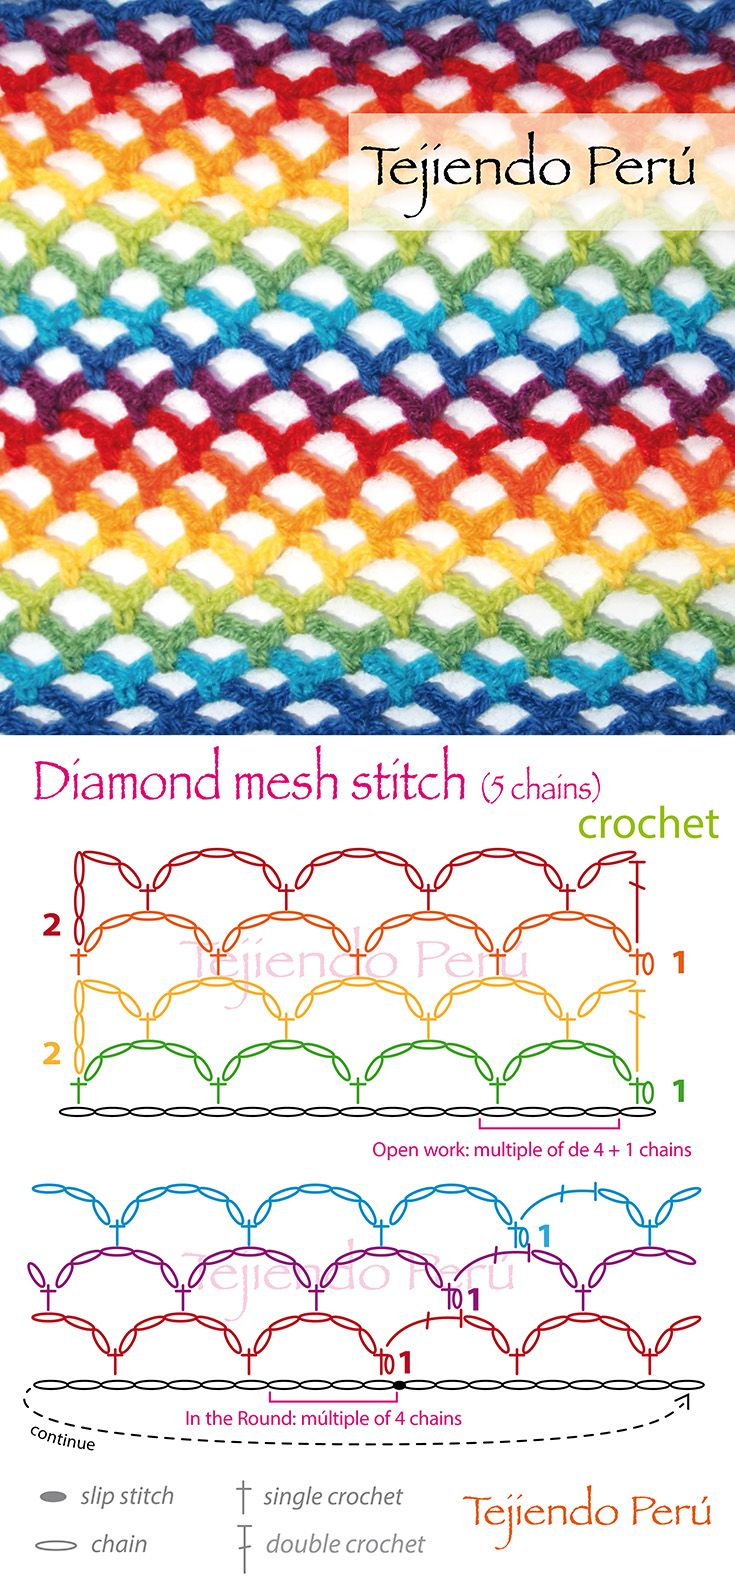 1000 images about puntos crochet on pinterest patrones crochet accessories and charts